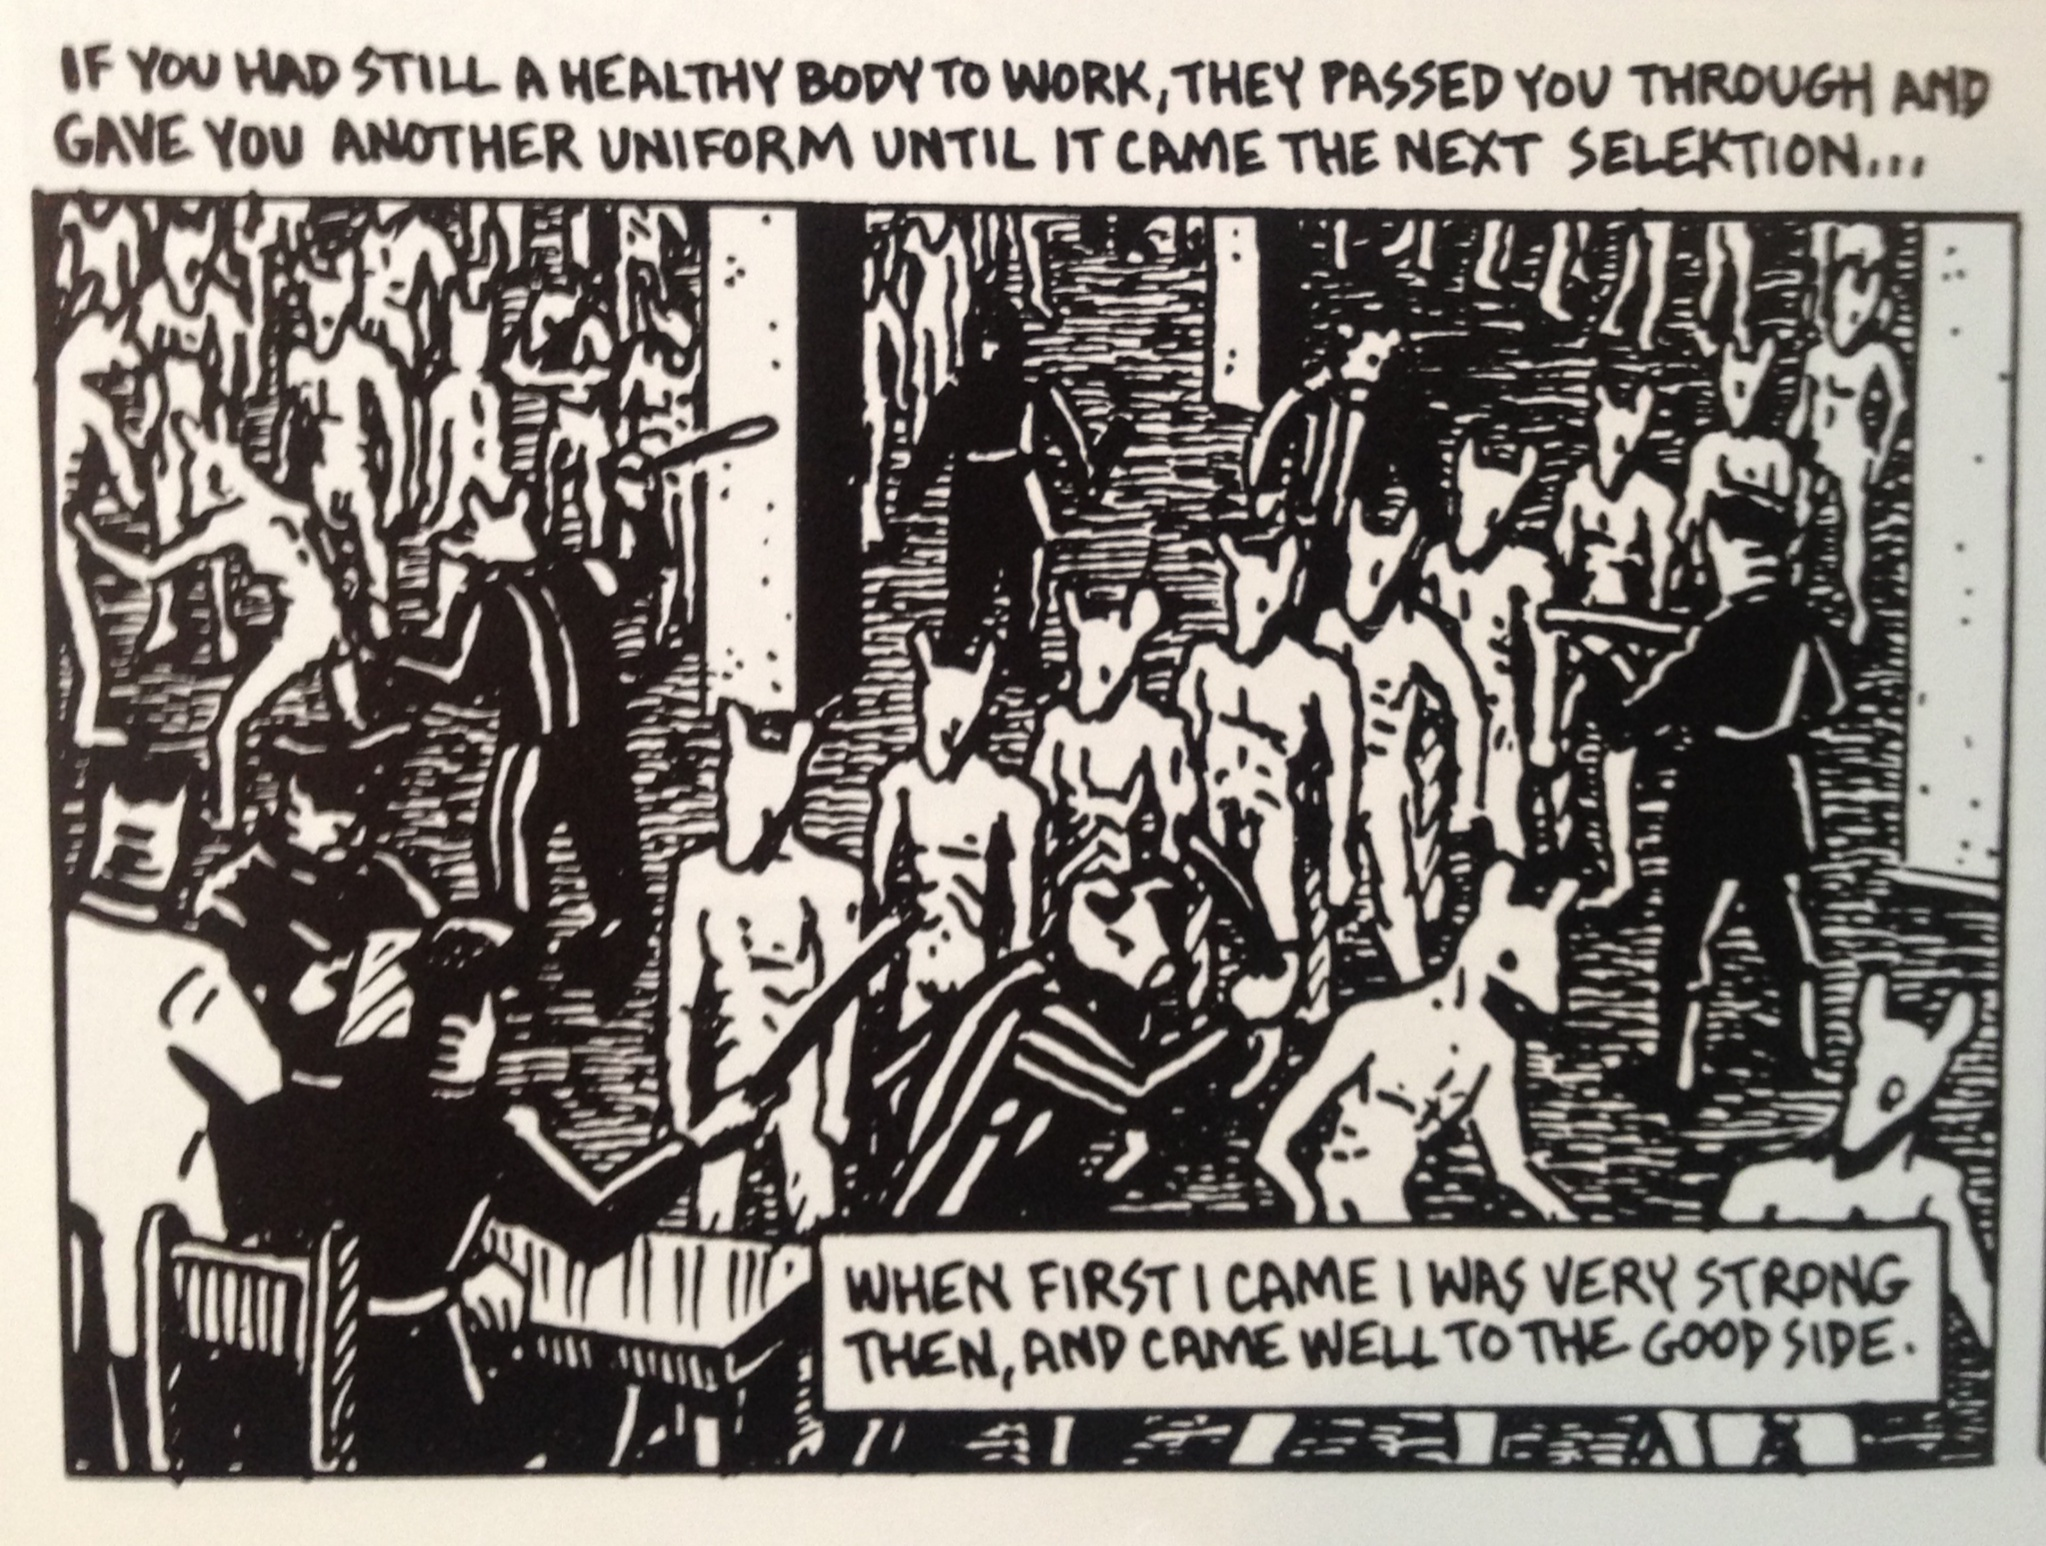 ones individual journey through the holocaust in art spiegelmans graphic novel maus a survivors tale